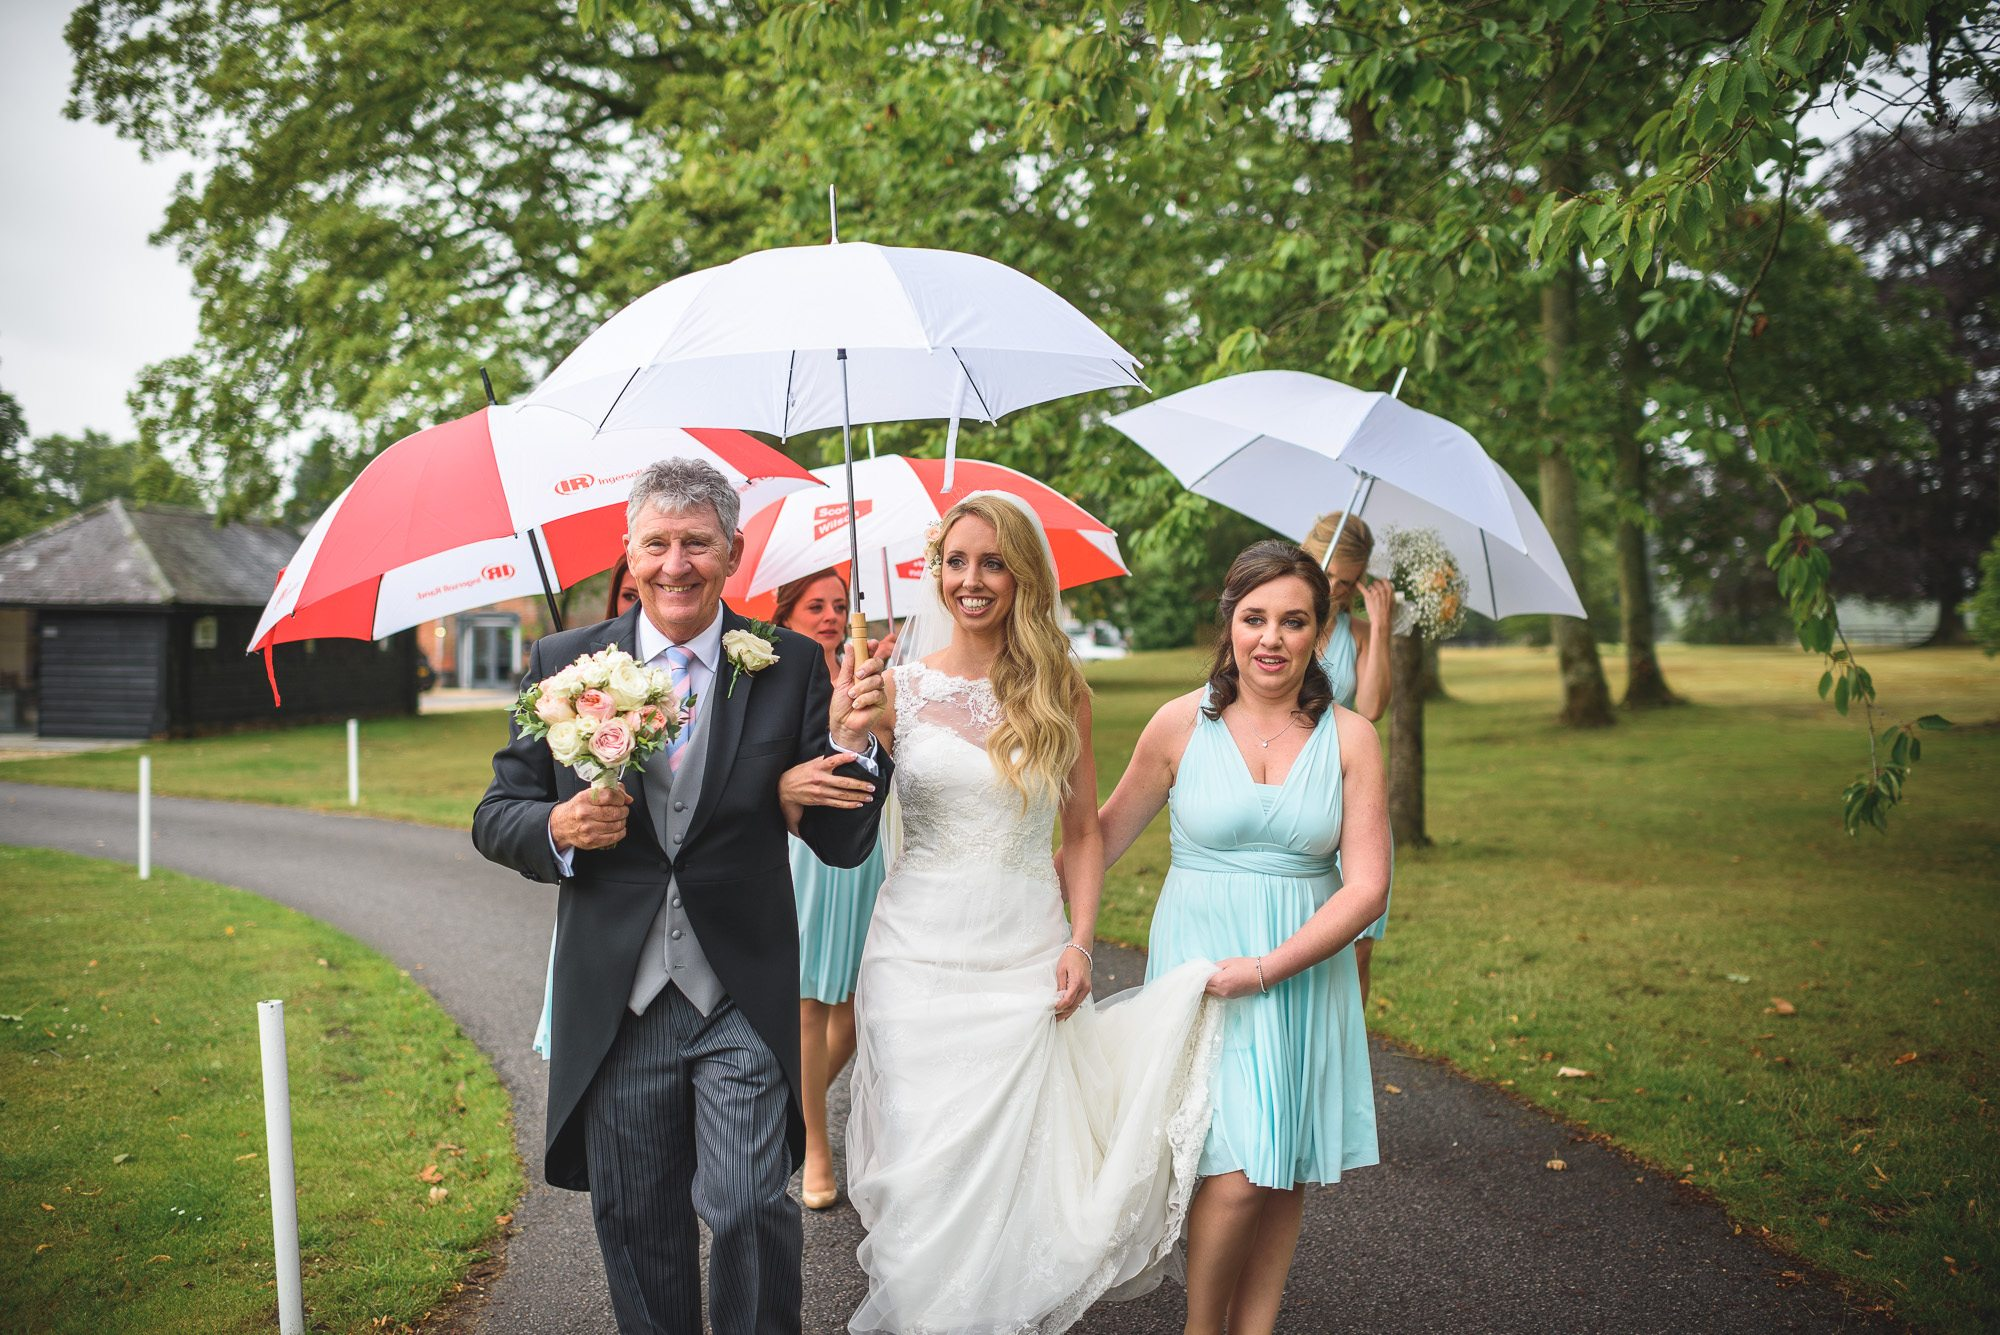 Suzanne-and-Wayne-Wasing-Park-wedding-photography-51-of-175